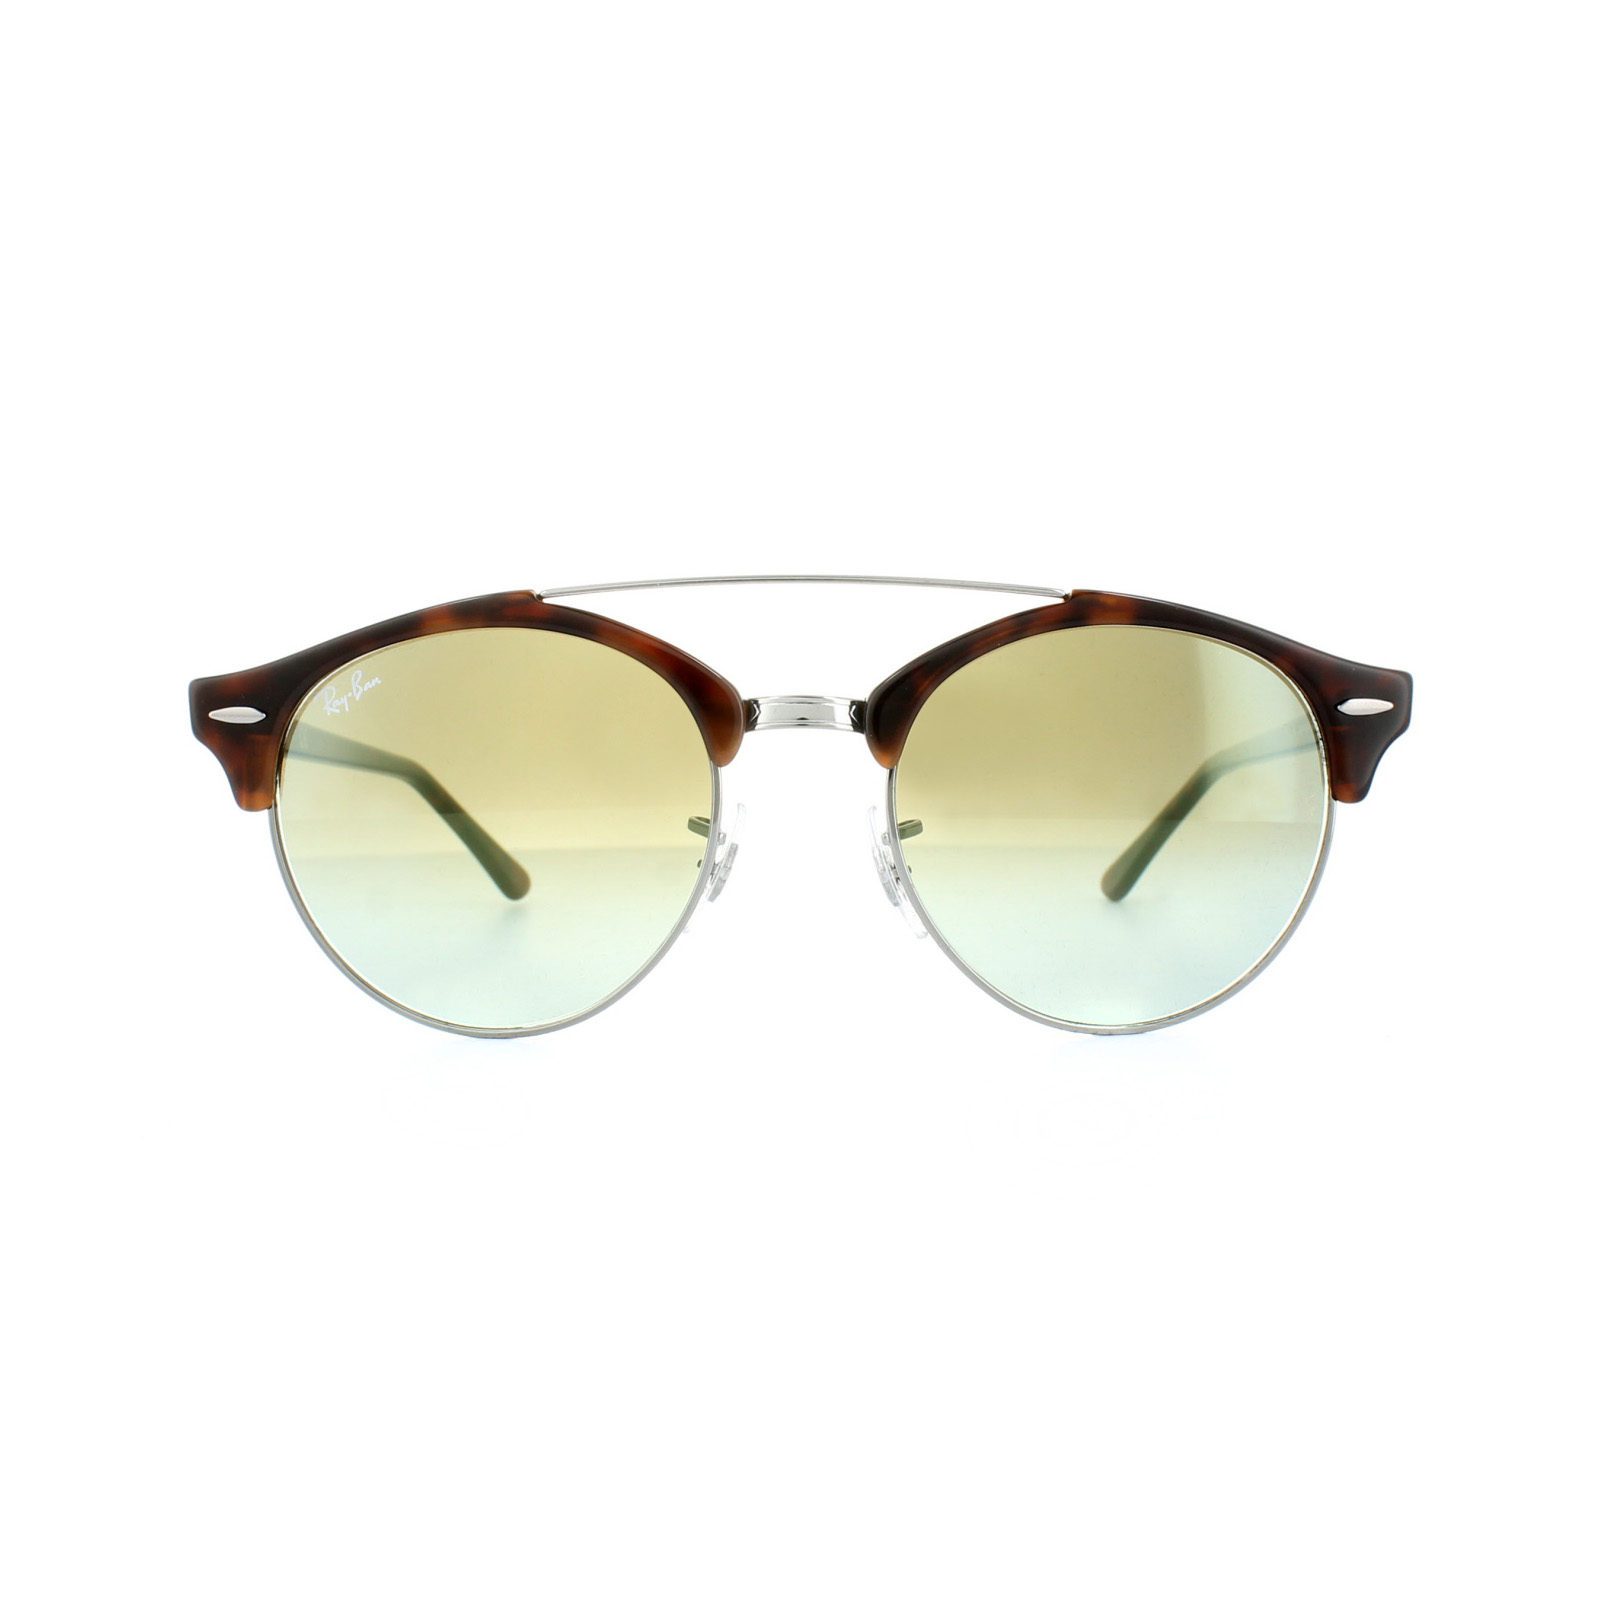 eae473bebd Sentinel Ray-Ban Sunglasses Clubround Double Bridge 4346 62519J Havana  Green Gradient